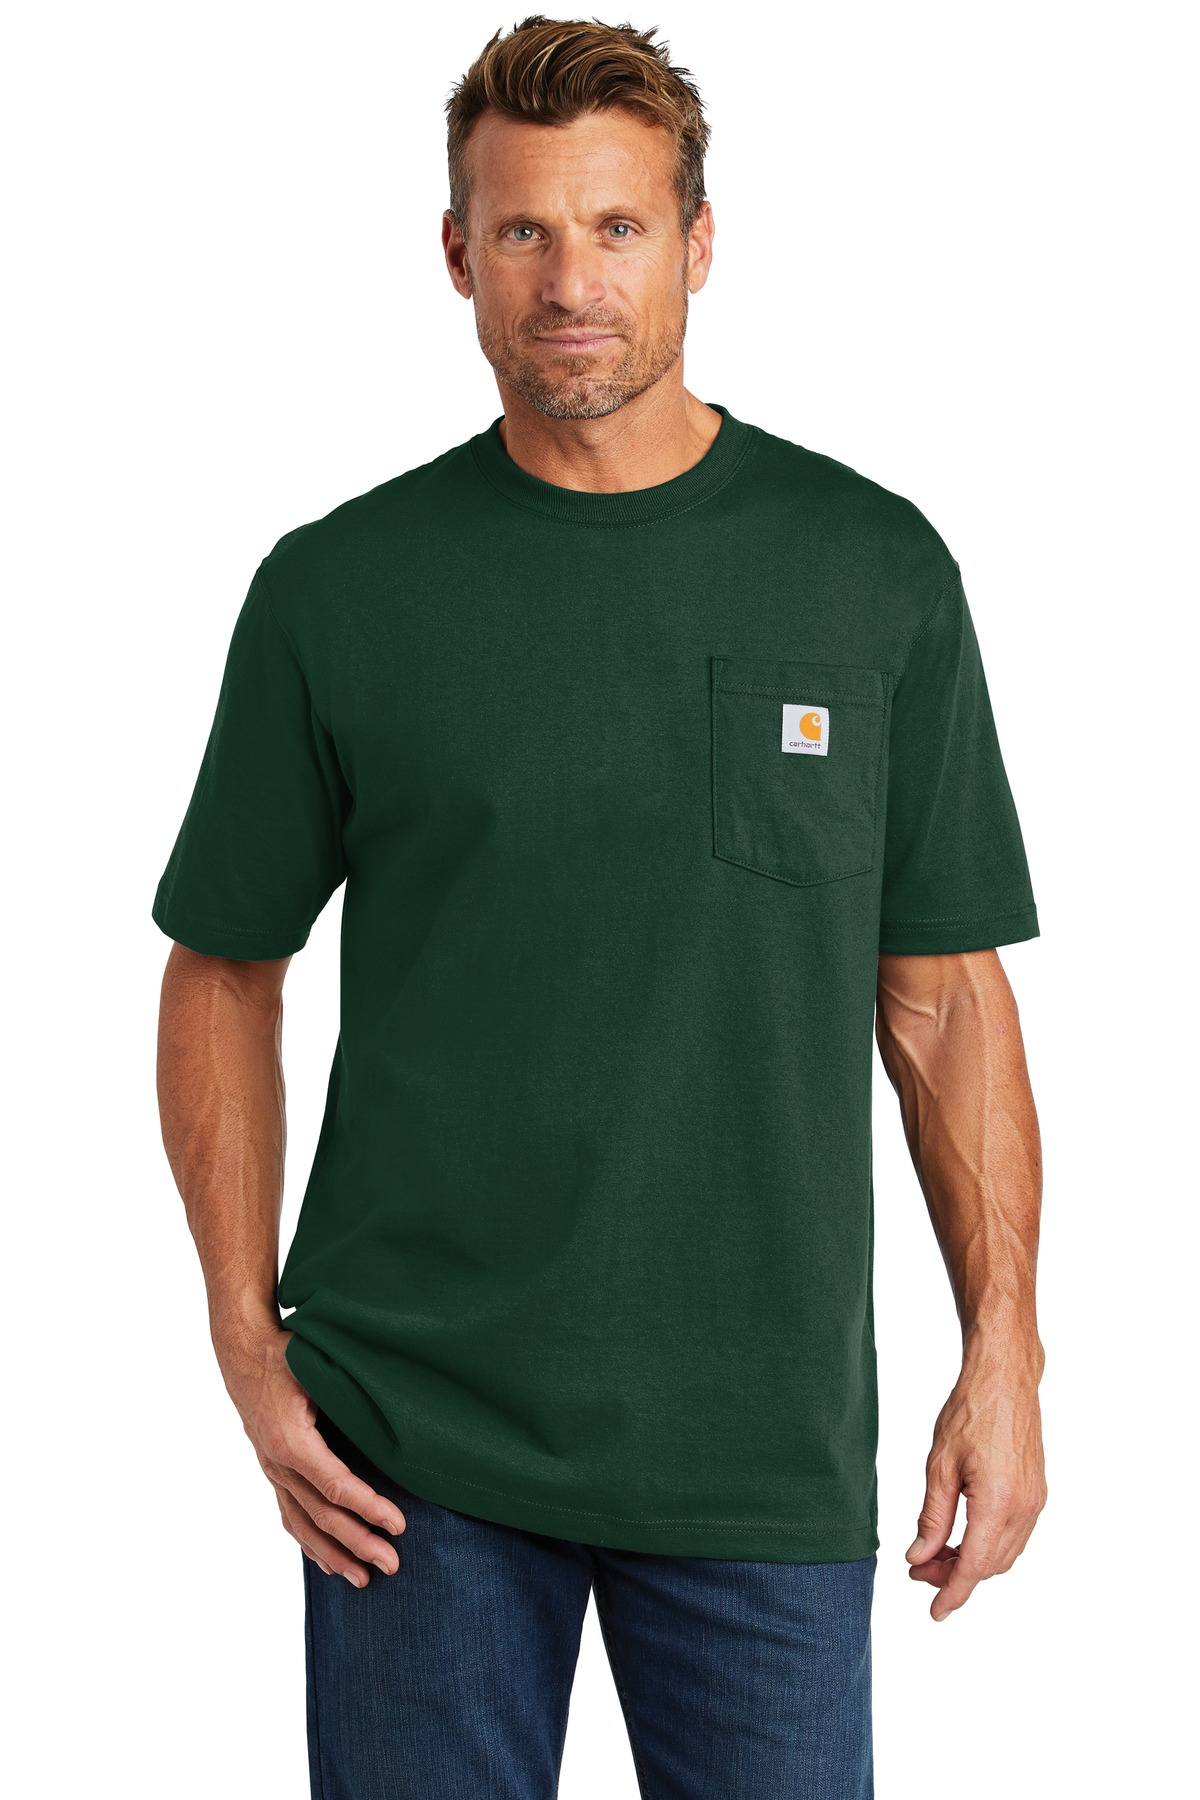 Carhartt  ®  Tall Workwear Pocket Short Sleeve T-Shirt. CTTK87 - Hunter Green